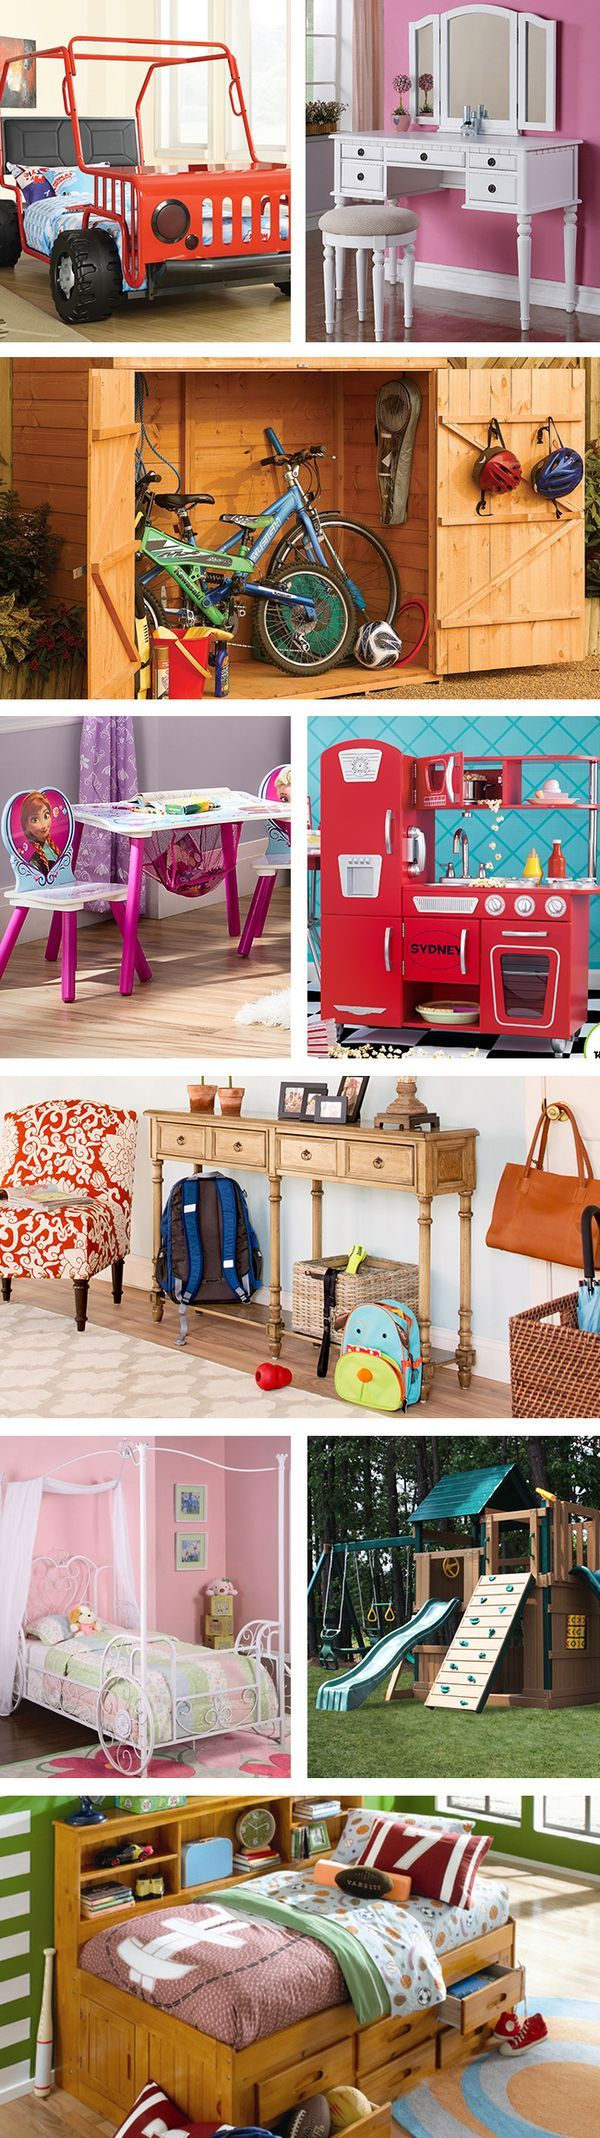 With growing kids, your home needs some changes as well. From best-selling kids beds to home organization to pretend playsets, we have everything you need to keep the mayhem to a minimum. Download the free Wayfair app to access exclusive deals everyday up to 70% off. Free shipping on all orders over $49.